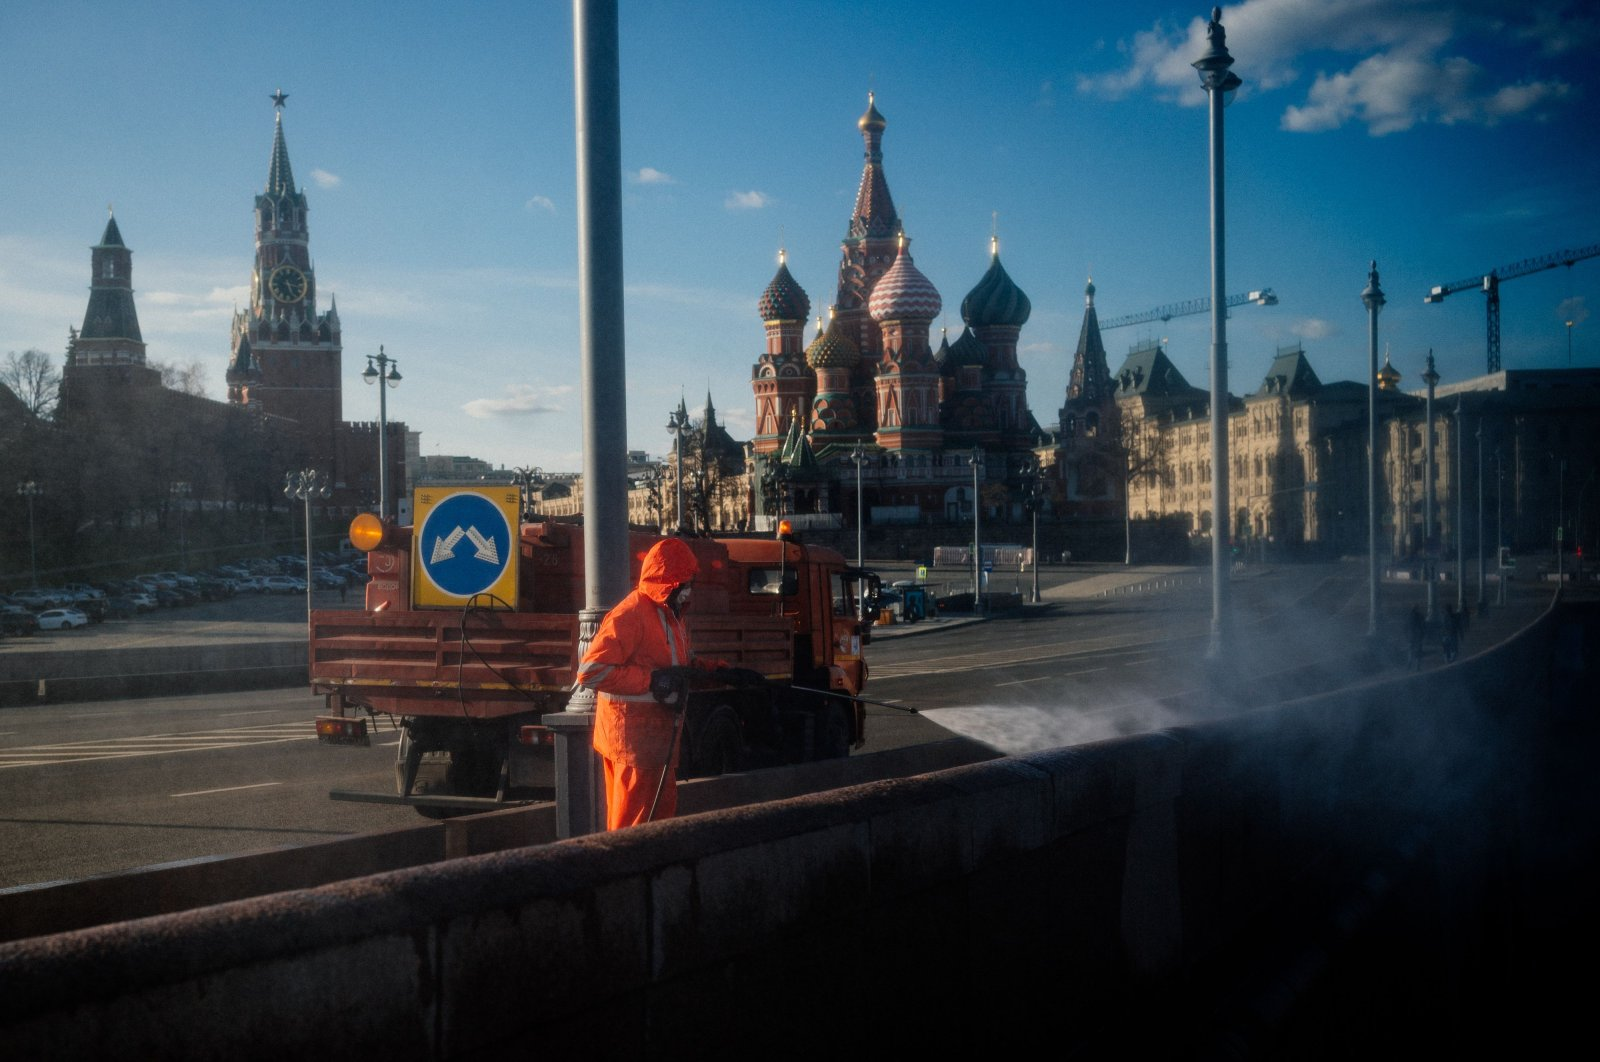 A municipal worker cleans and disinfects a bridge near the Kremlin in downtown Moscow on April 12, 2020, during a strict lockdown in Russia to stop the spread of the novel coronavirus COVID-19. (AFP Photo)